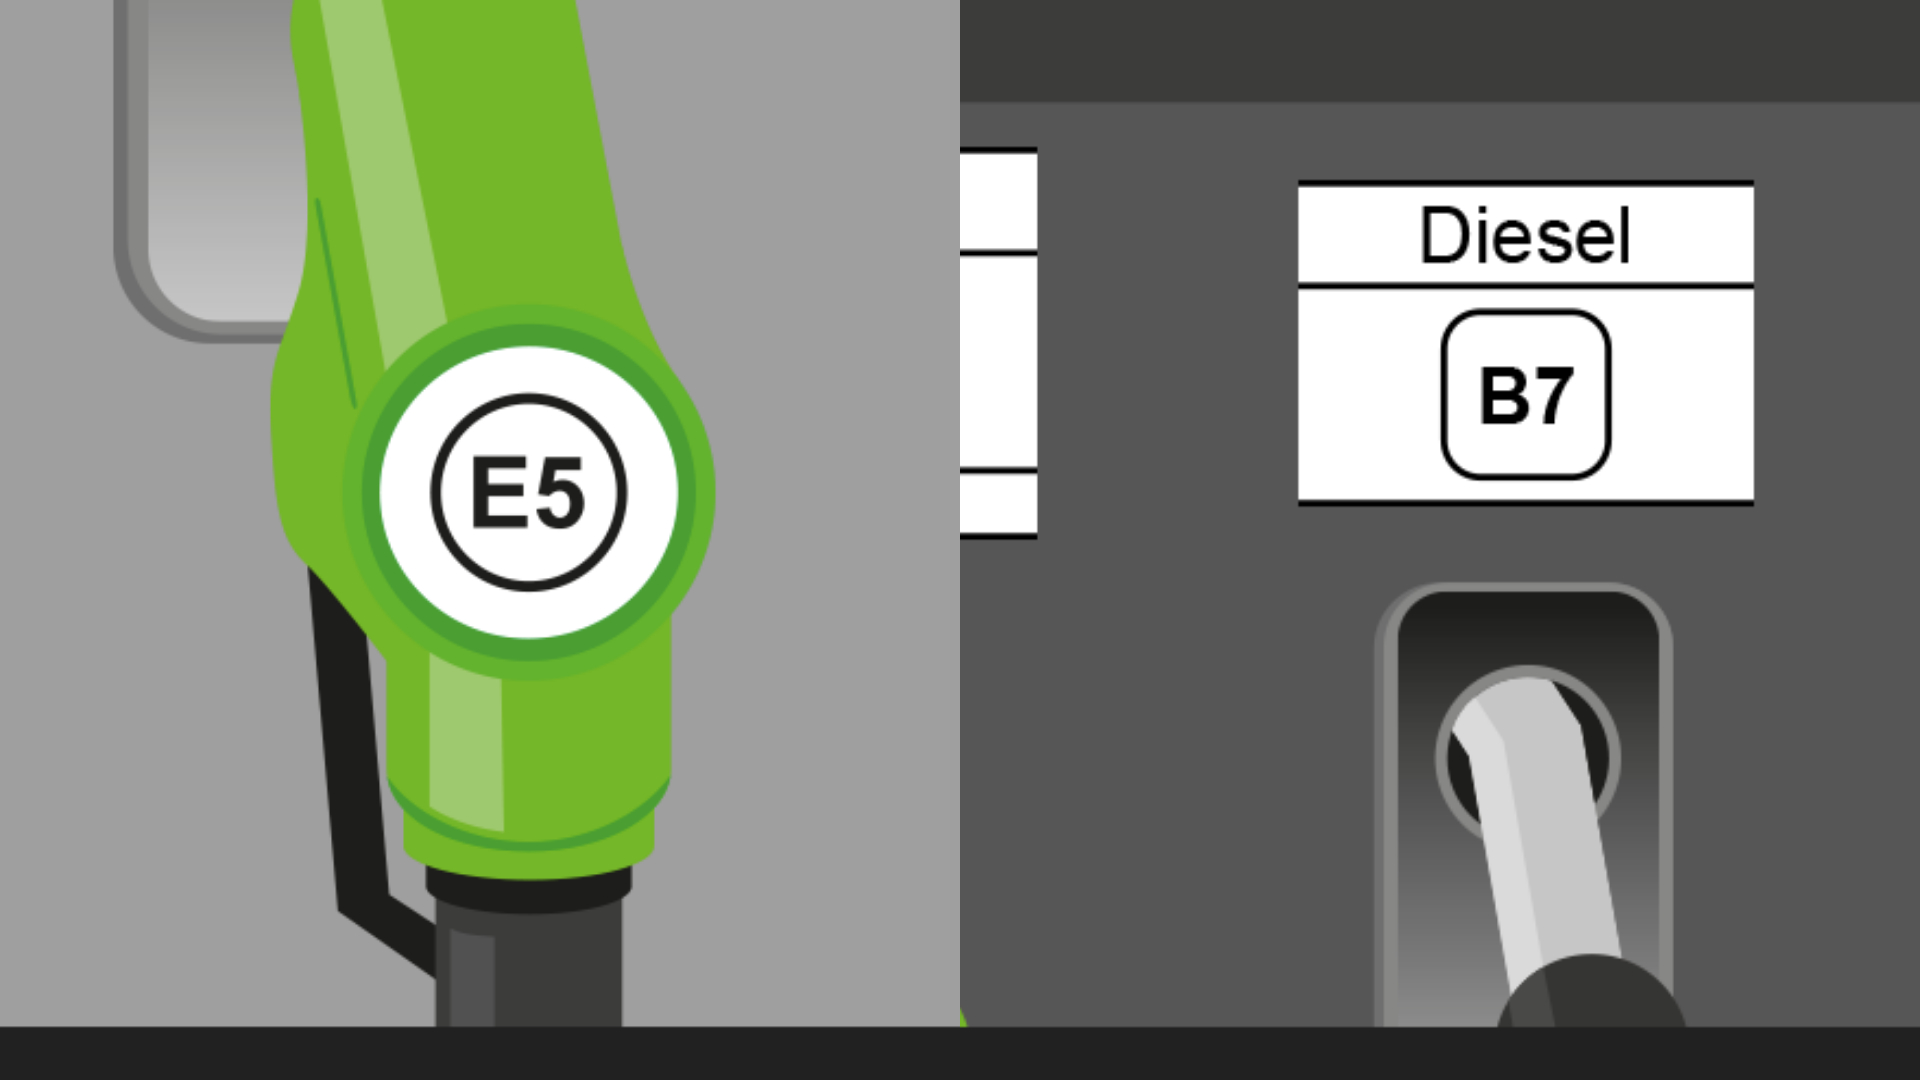 Fuel names changed in the UK